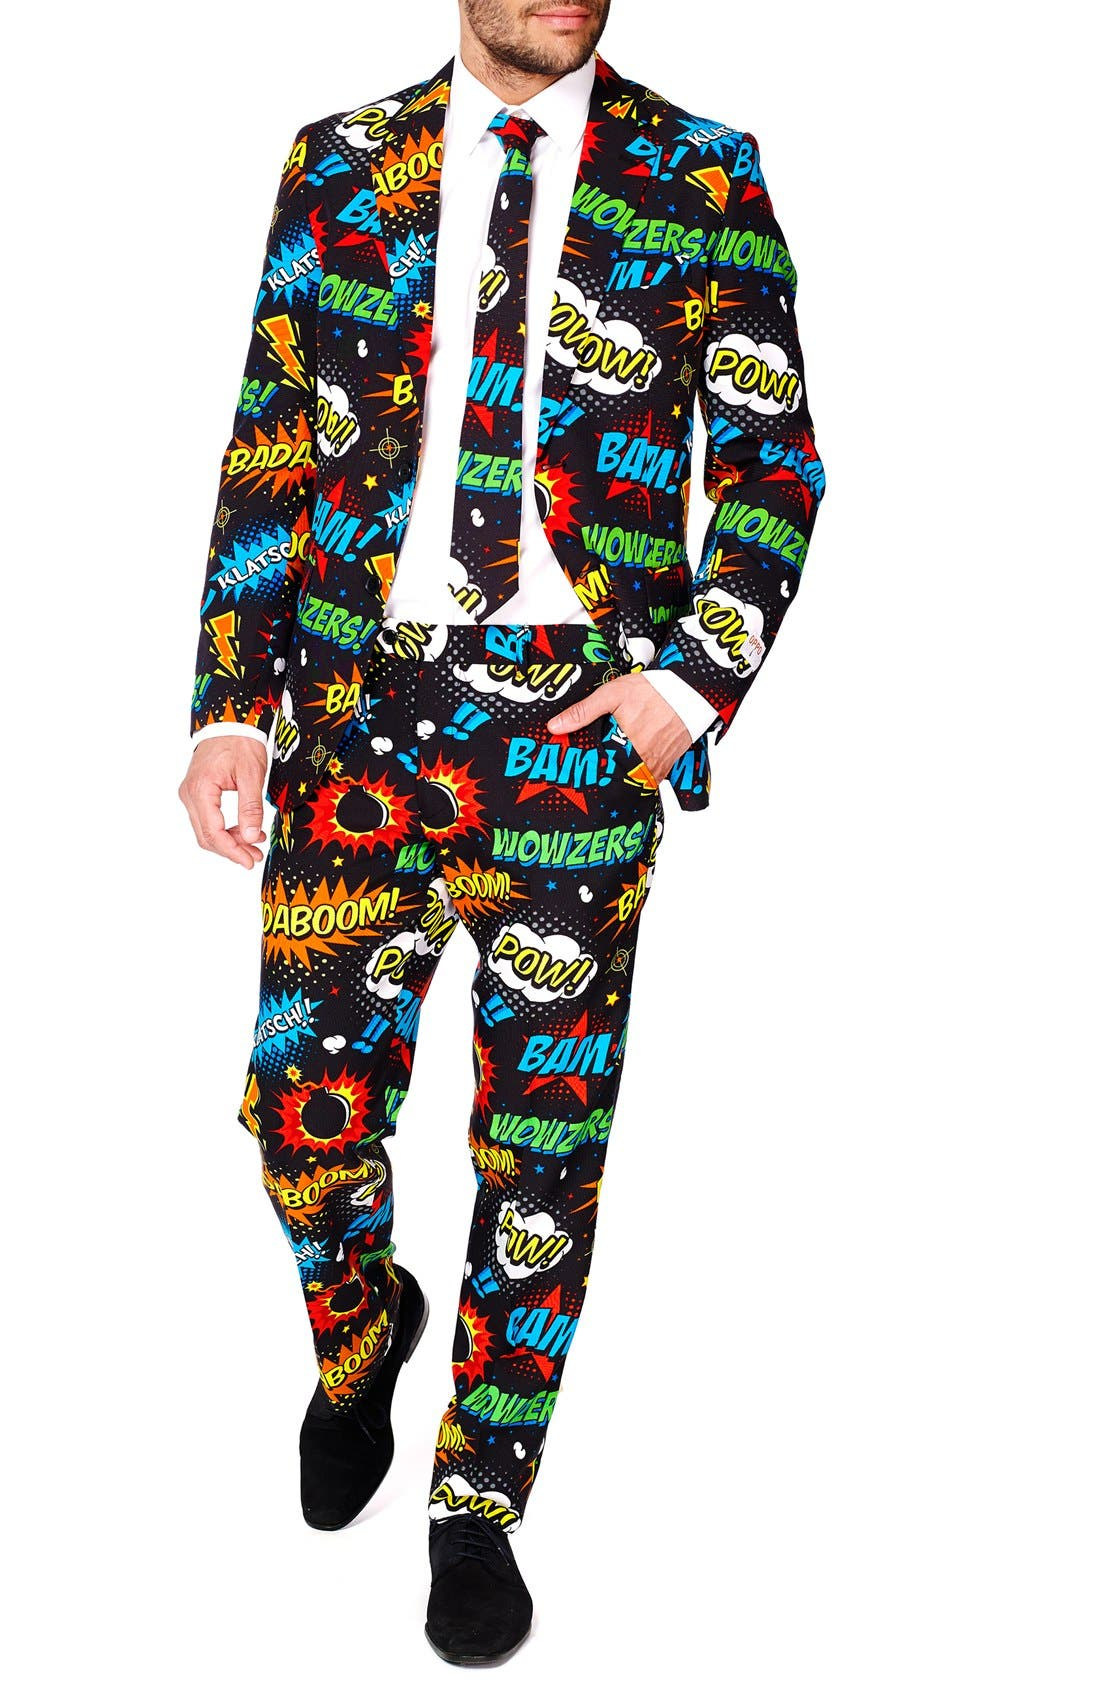 'Badaboom' Trim Fit Two-Piece Suit with Tie,                             Main thumbnail 1, color,                             001